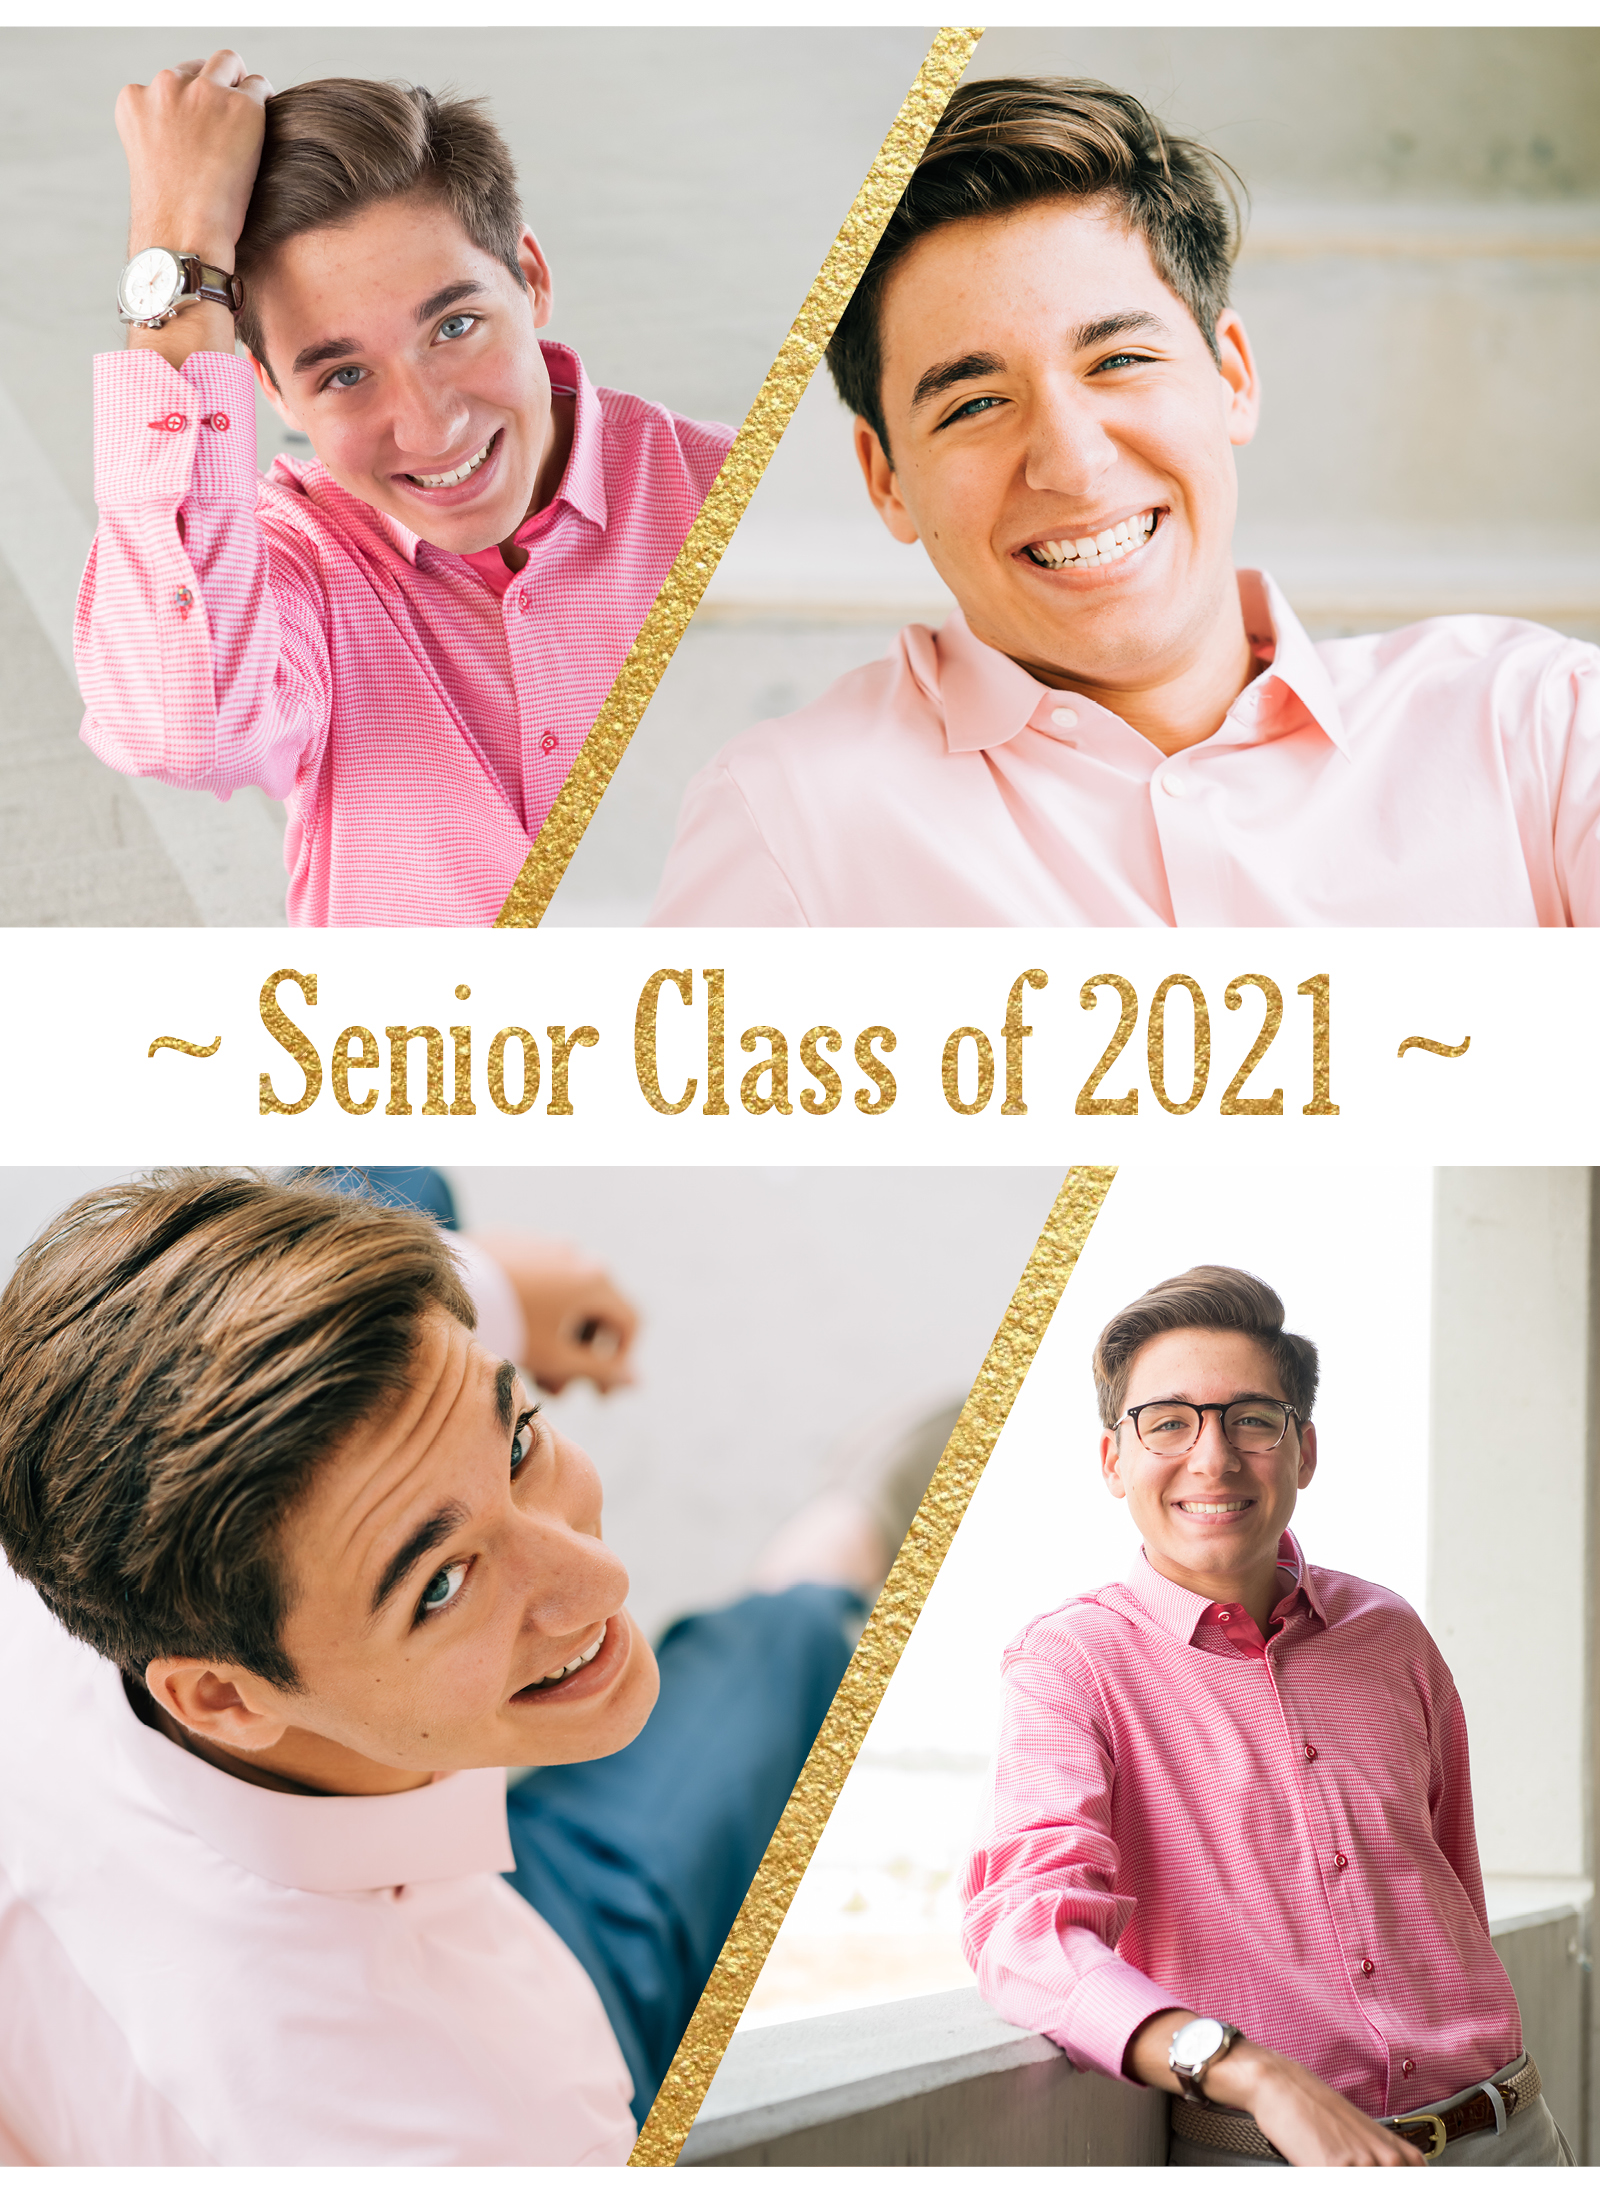 Senior Guy in Pink